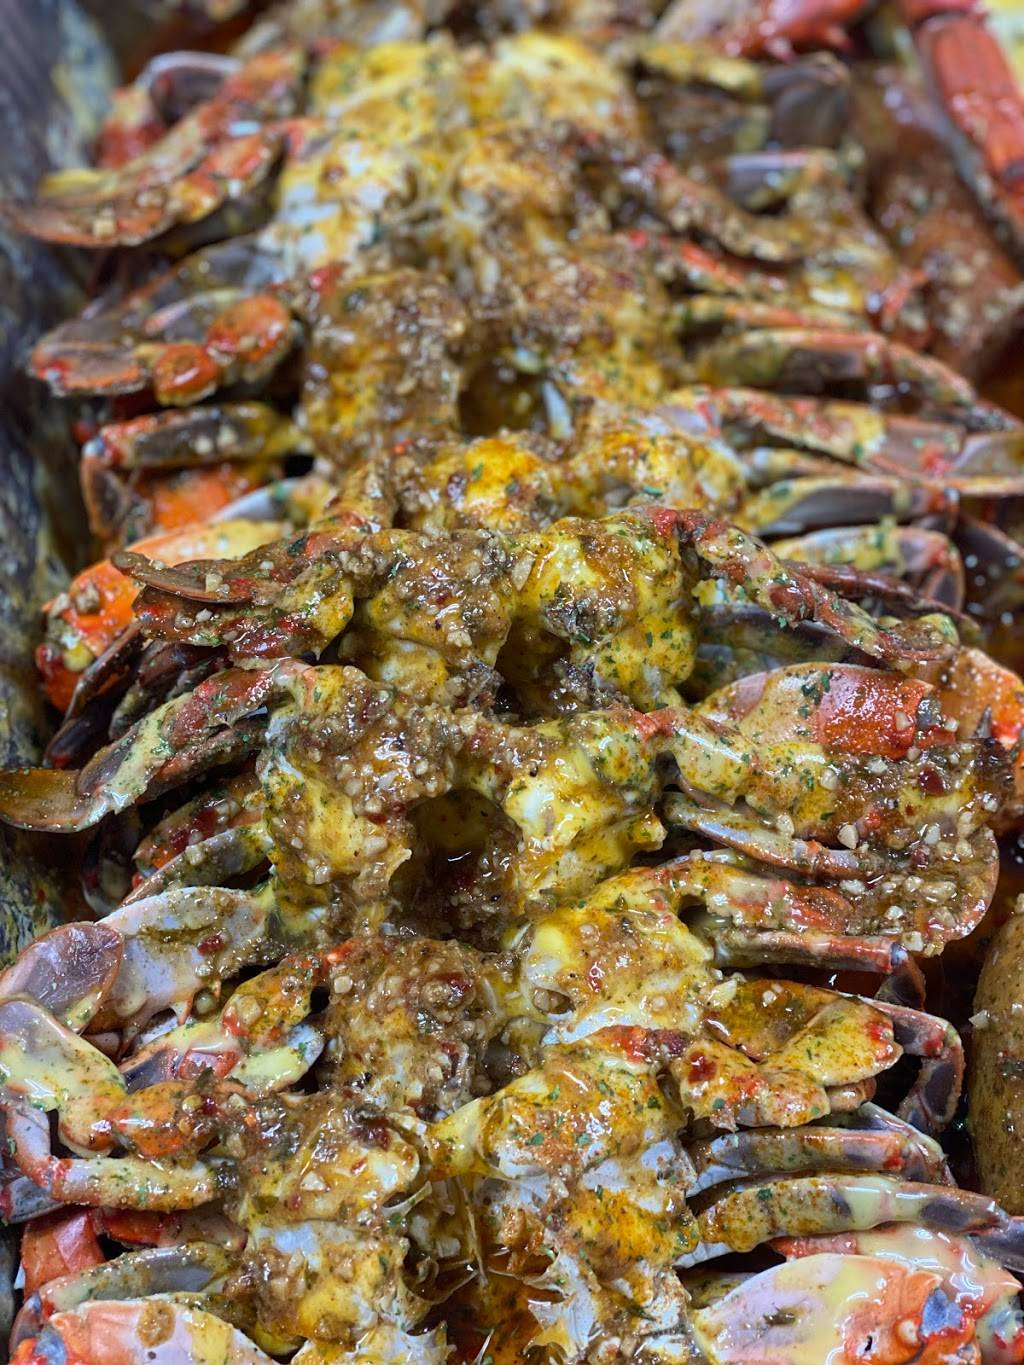 Crab Shack 386 | restaurant | 109 S State St, Bunnell, FL 32110, USA | 3863136137 OR +1 386-313-6137